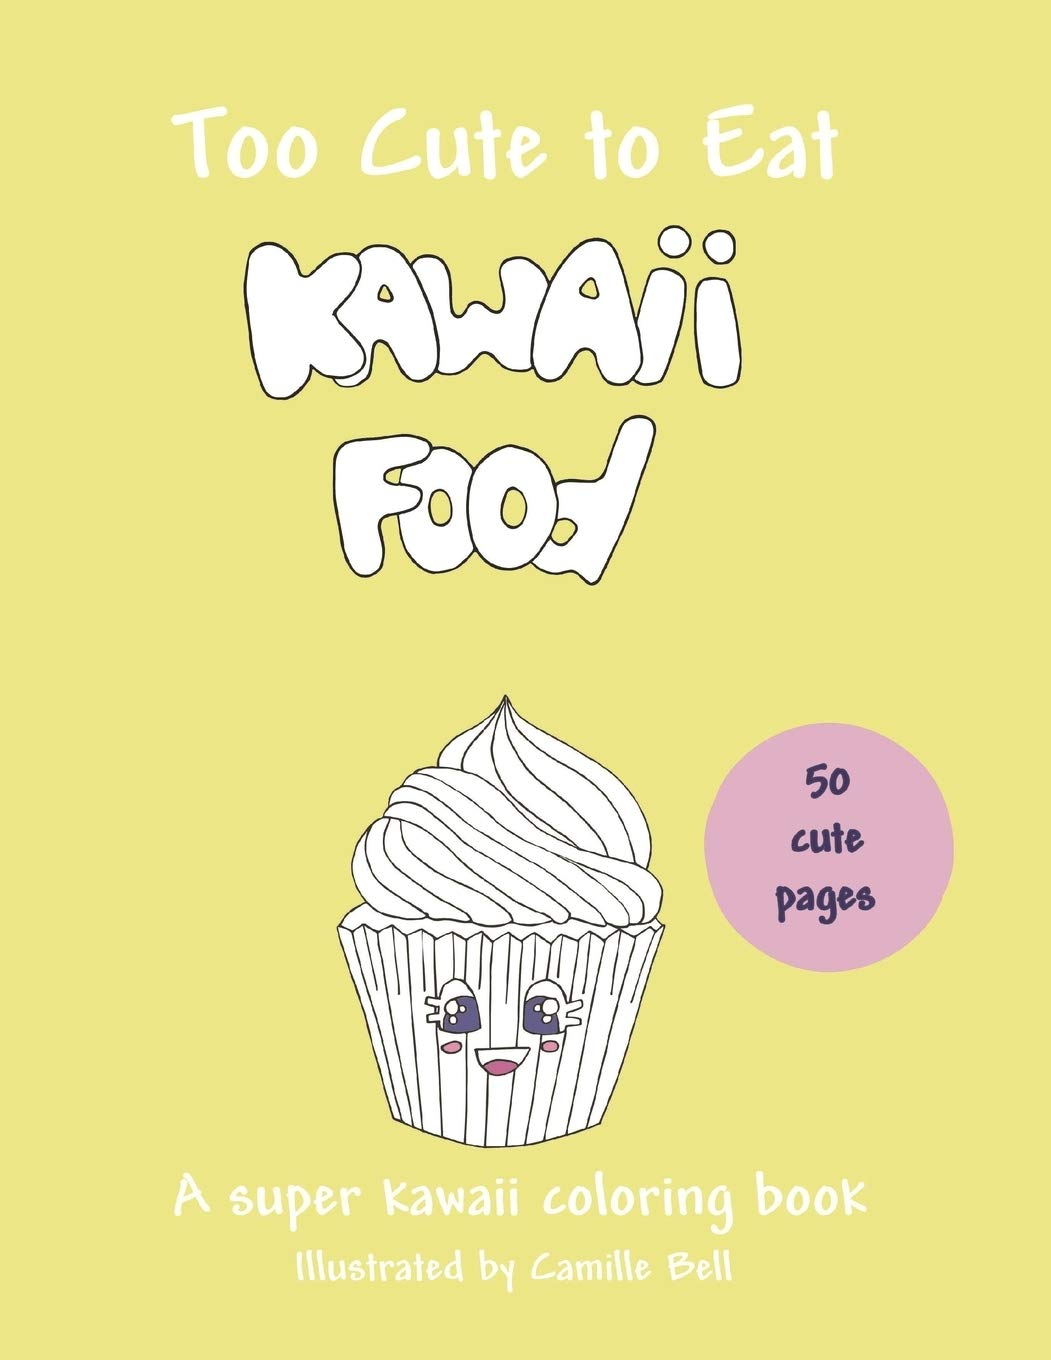 Amazon Com Too Cute To Eat Kawaii Food A Super Kawaii Coloring Book 50 Cute Pictures A Food Coloring Book Suitable For All Ages 9781689977241 Bell Camille Books